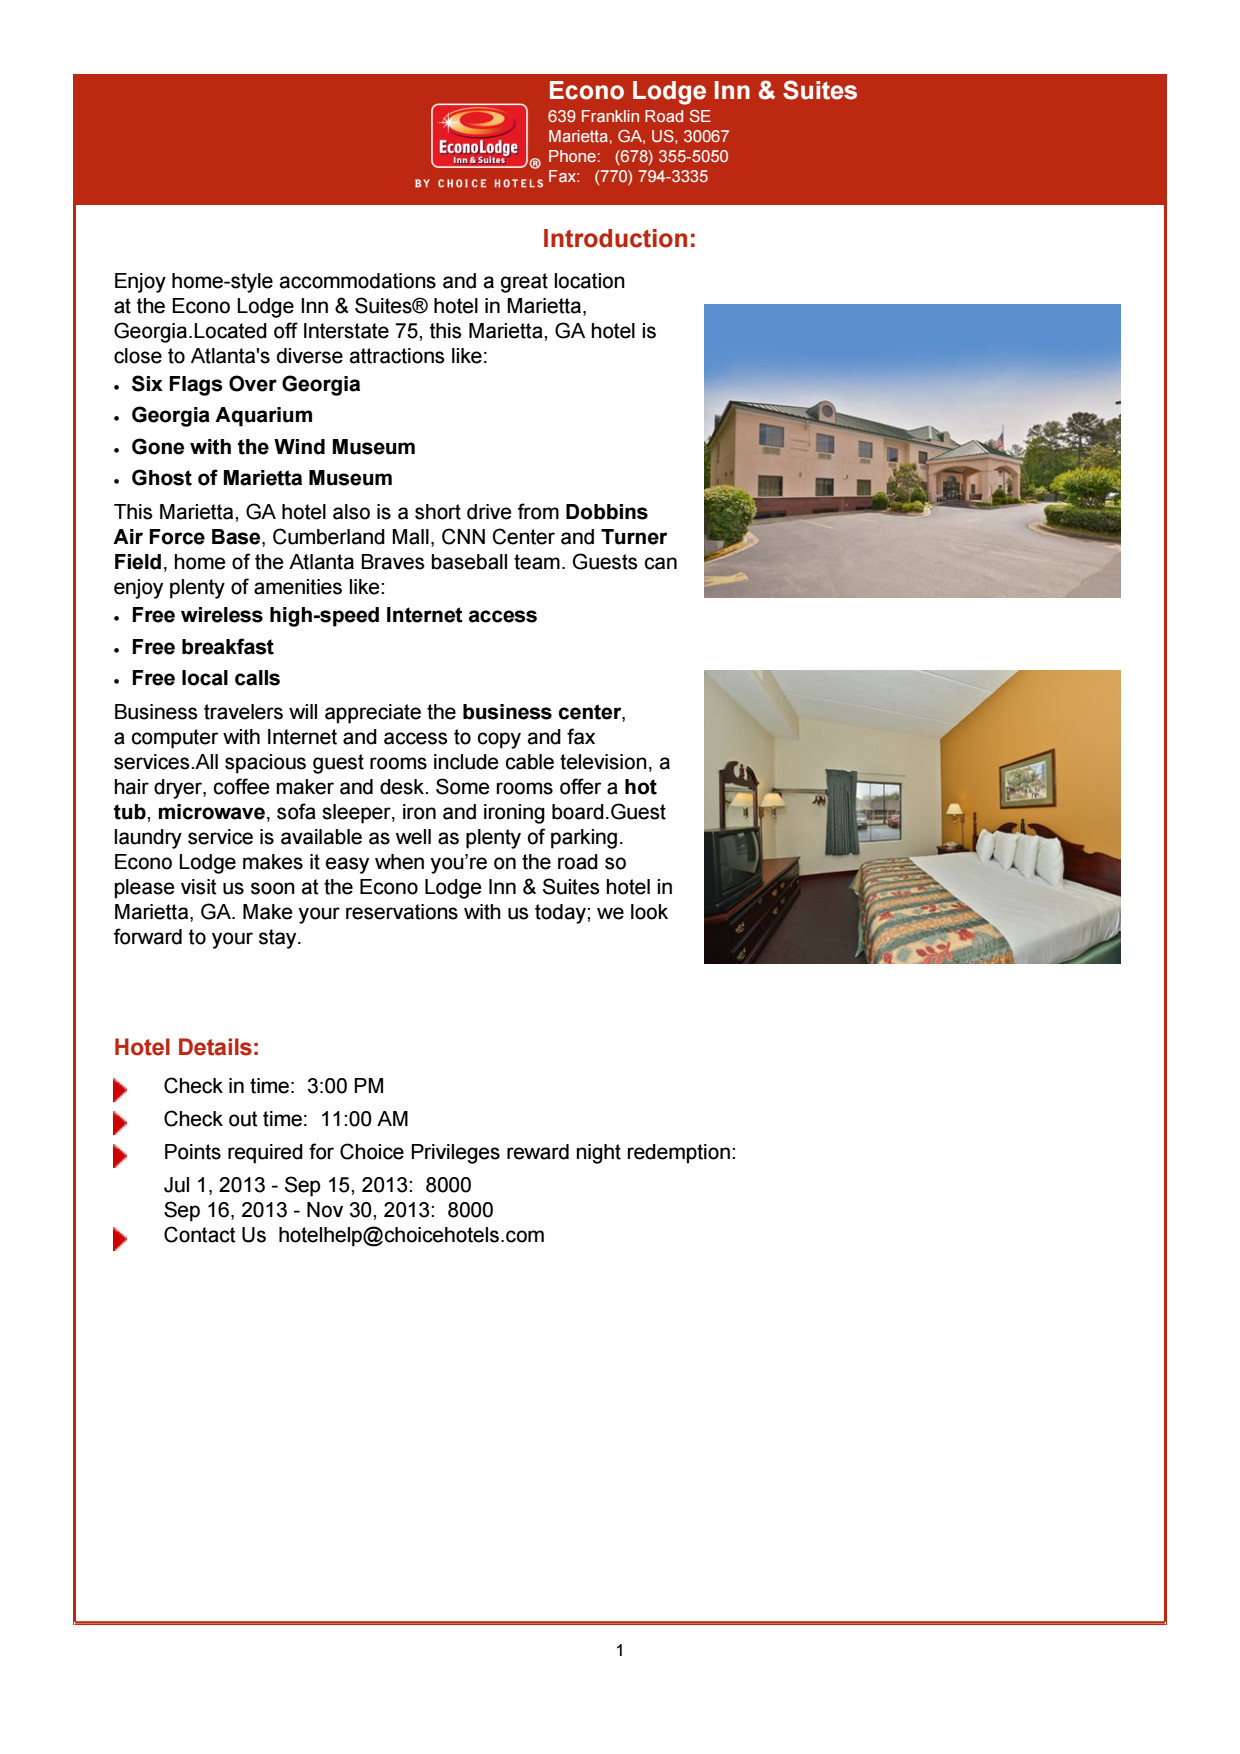 Econo Lodge Inn & Suites Brochure